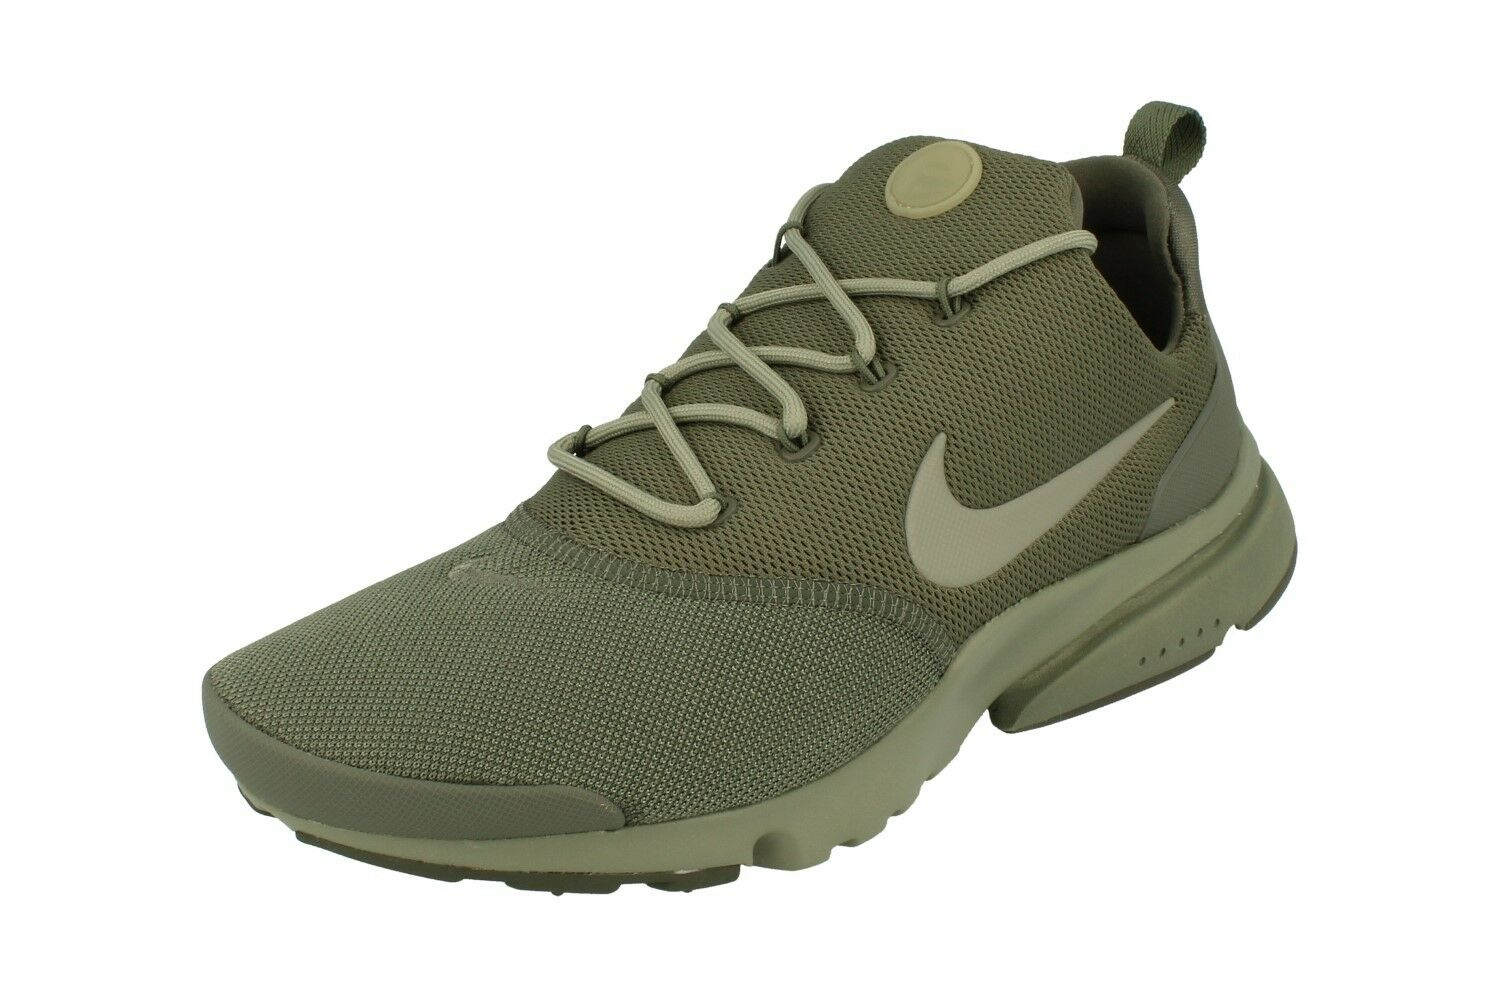 Nike Presto Fly Mens Running Trainers Trainers Running 908019 Sneakers Shoes  009 27976c